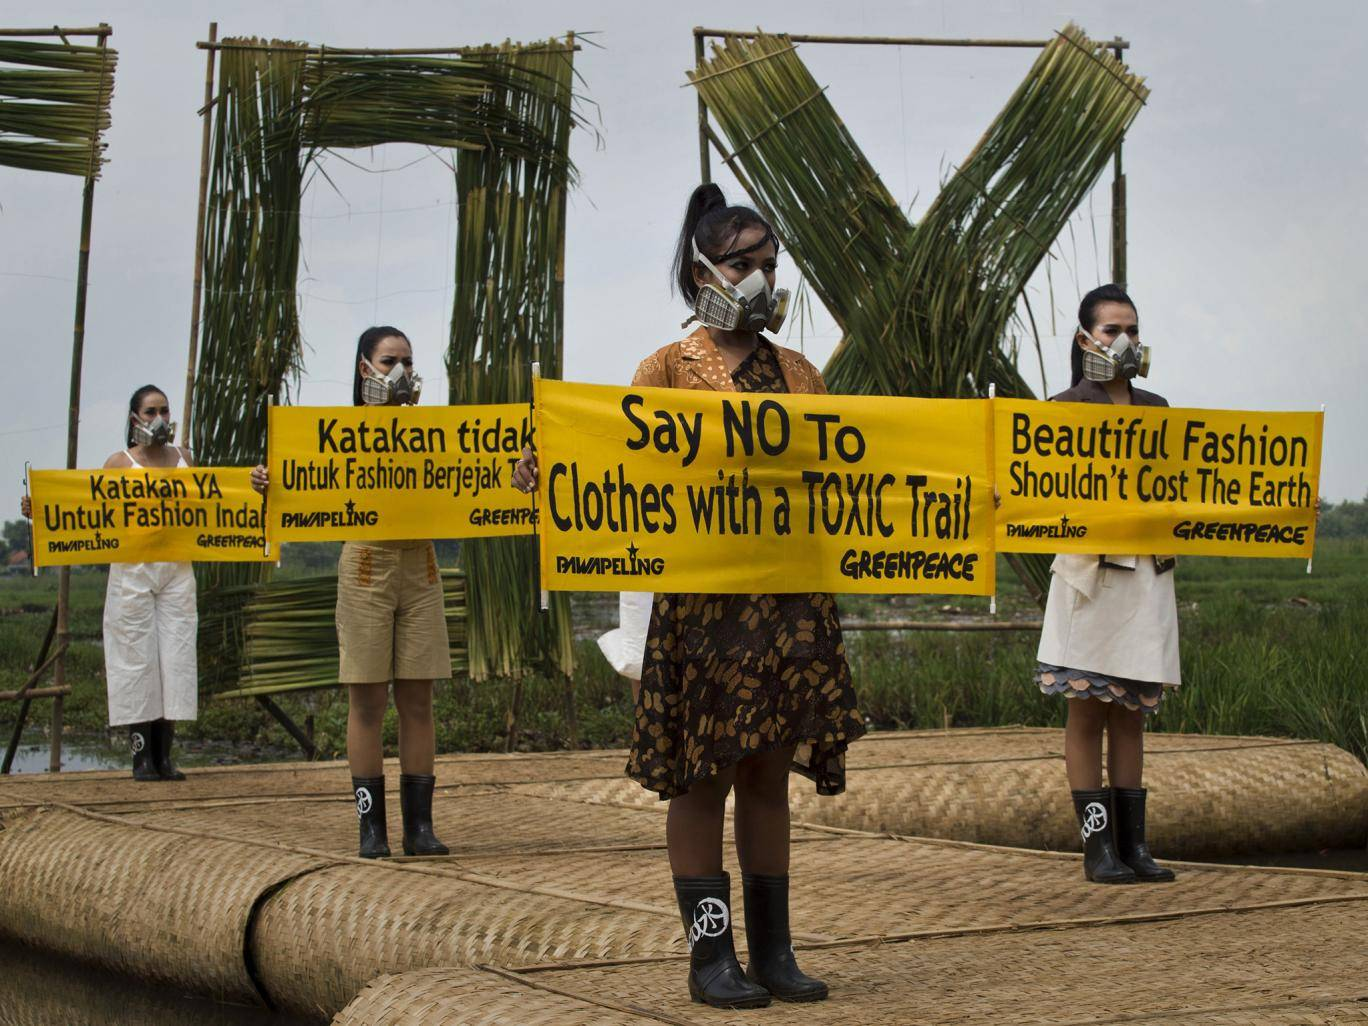 Models with gas masks – part of a Greenpeace campaign for top fashion brands to remove toxic chemicals from their supply chains in Indonesia. Photo source:AFP/Getty Images.